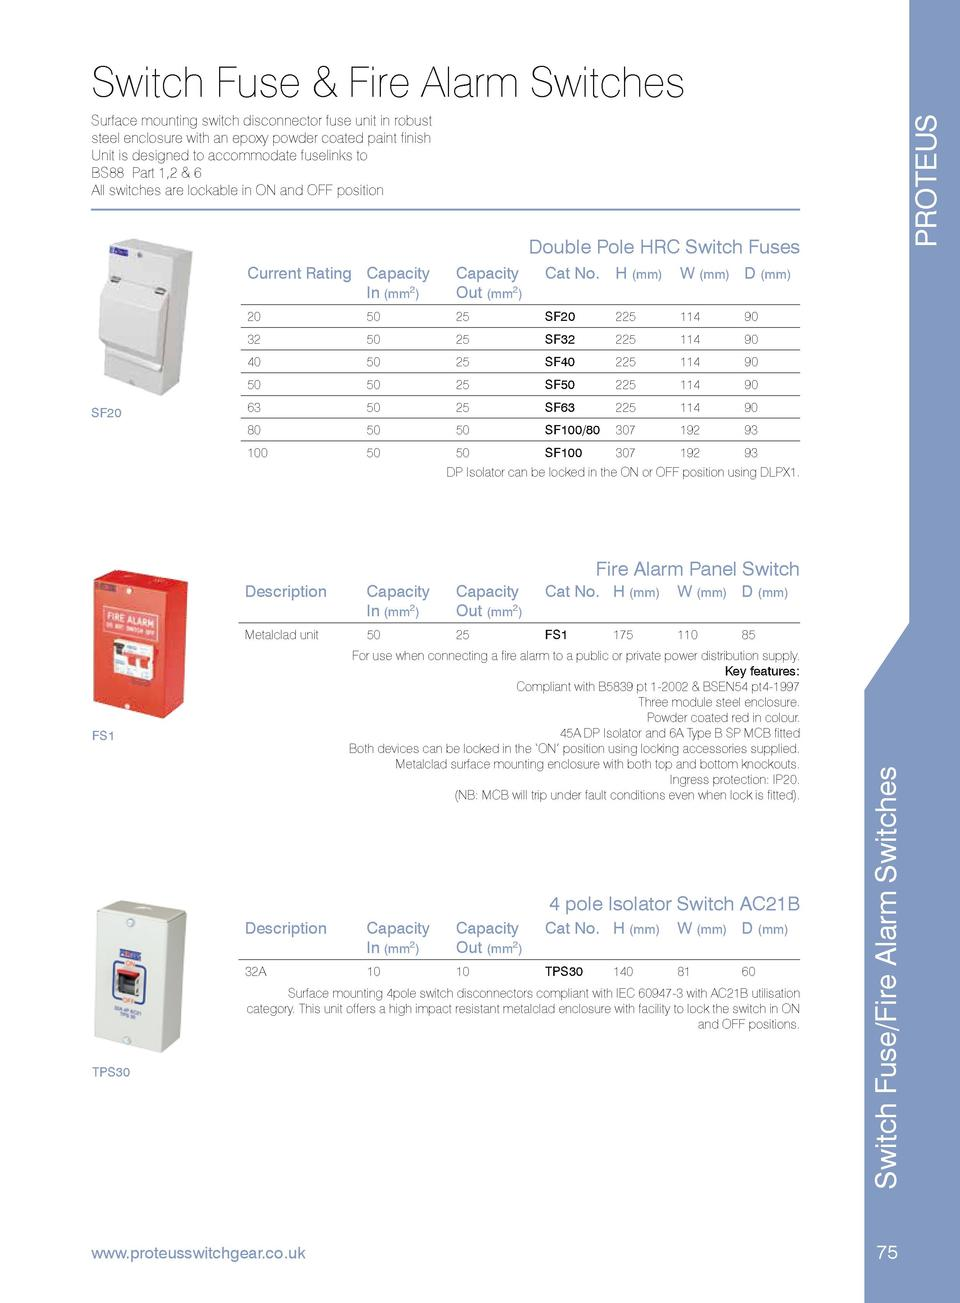 Imd Catalogue Relay Switch Halfords Fuse Fire Alarm Switches Proteus Surface Mounting Disconnector Unit In Robust Steel Enclosure